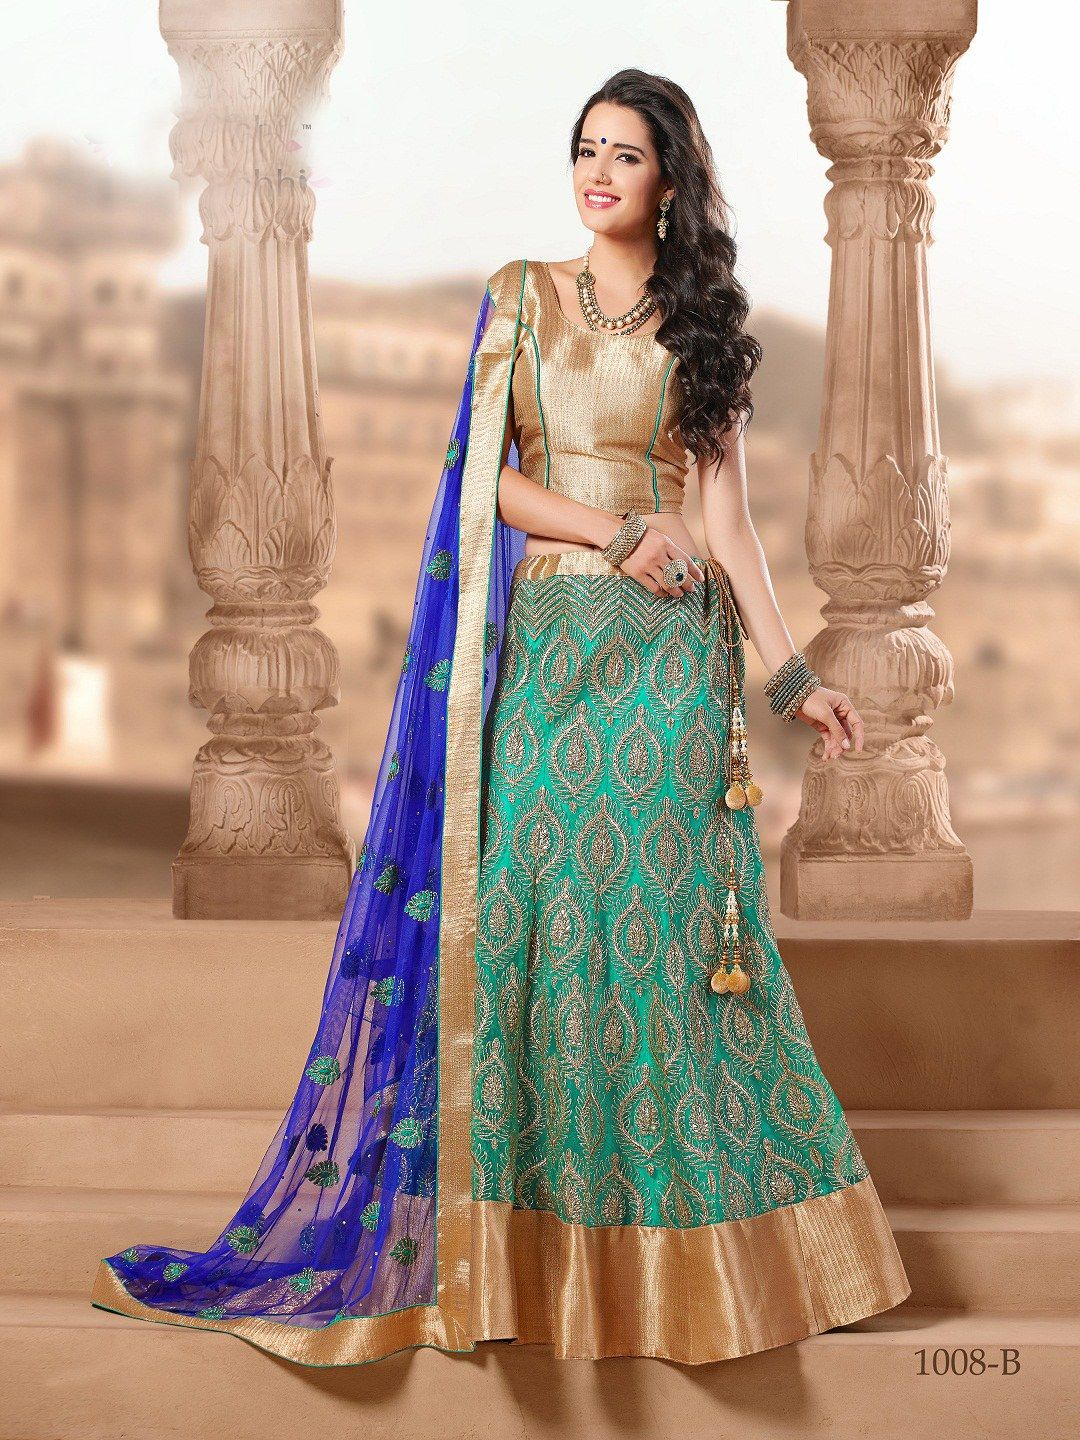 Image result for blue metallic gold brocade lehenga